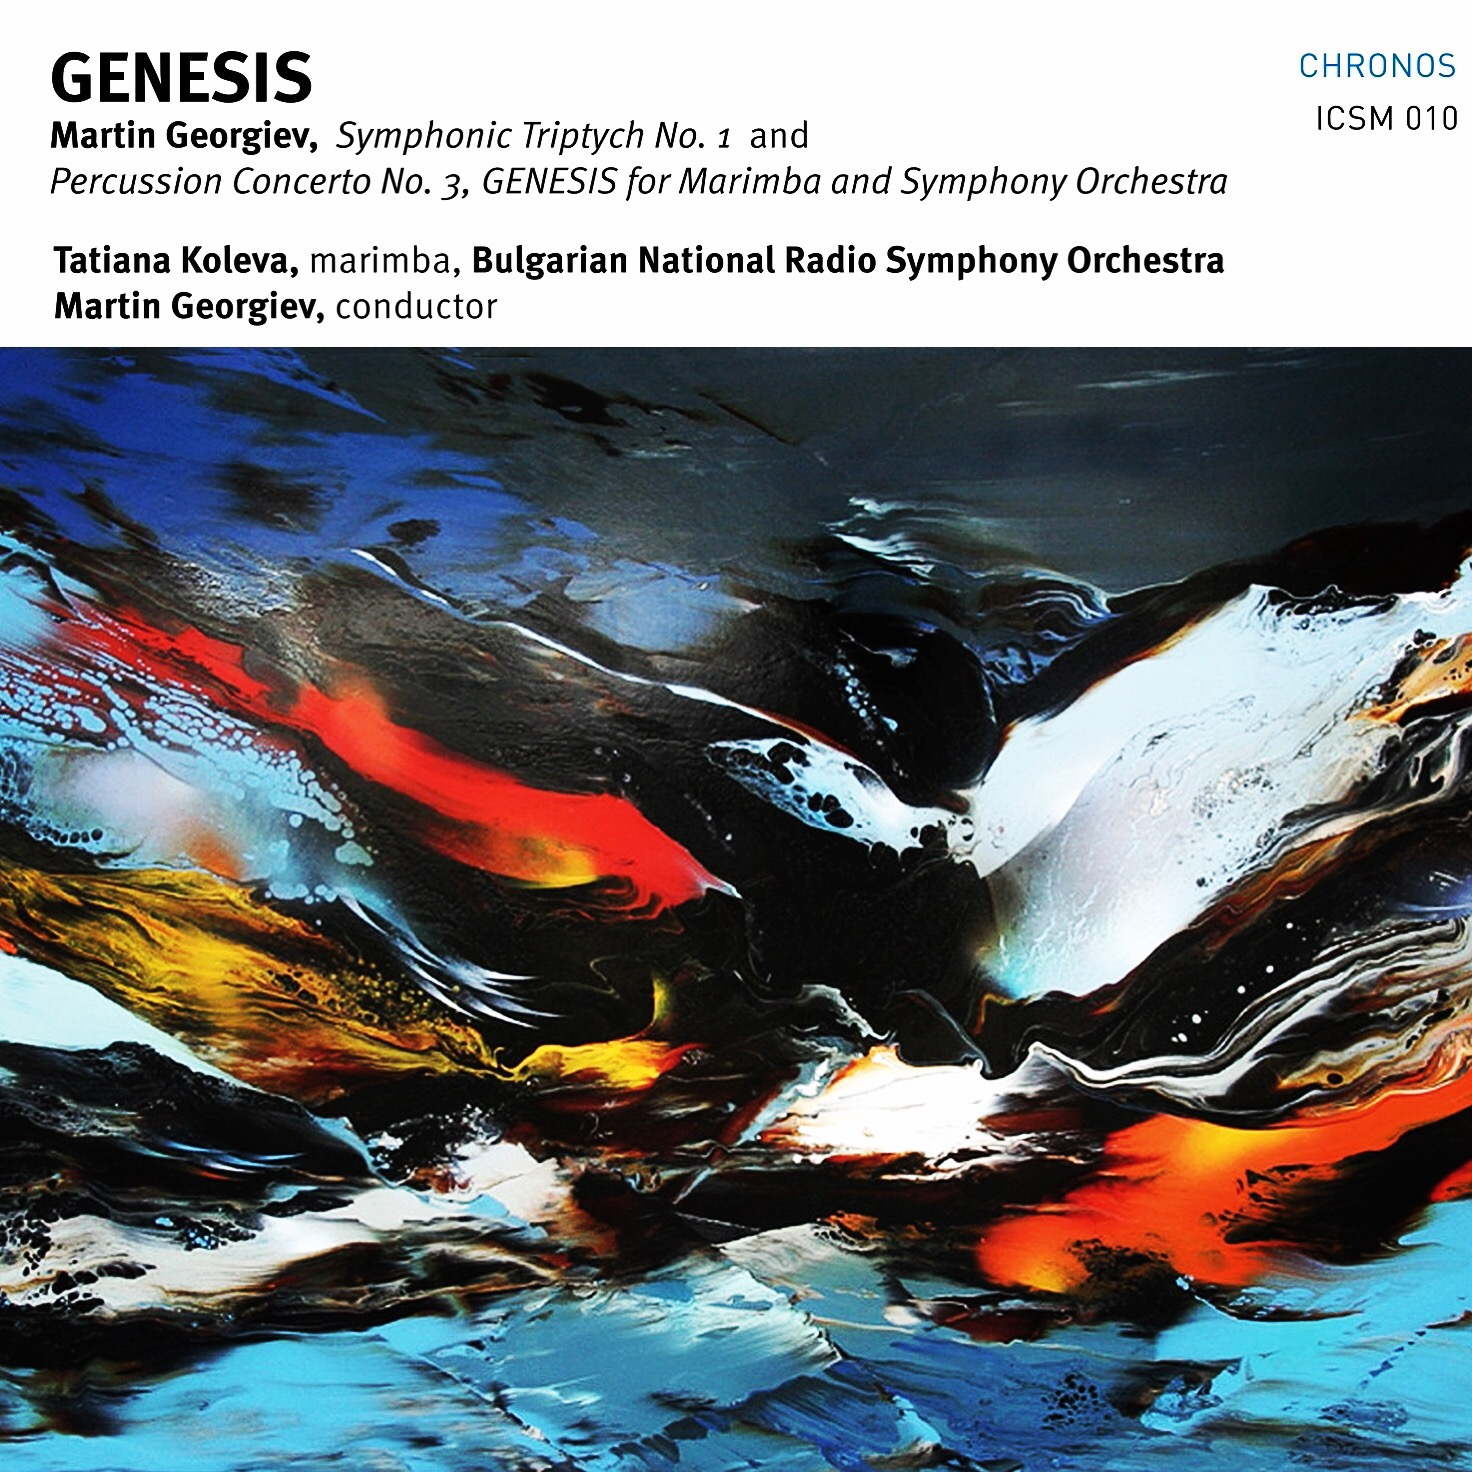 Martin Georgiev GENESIS ICSM Records London